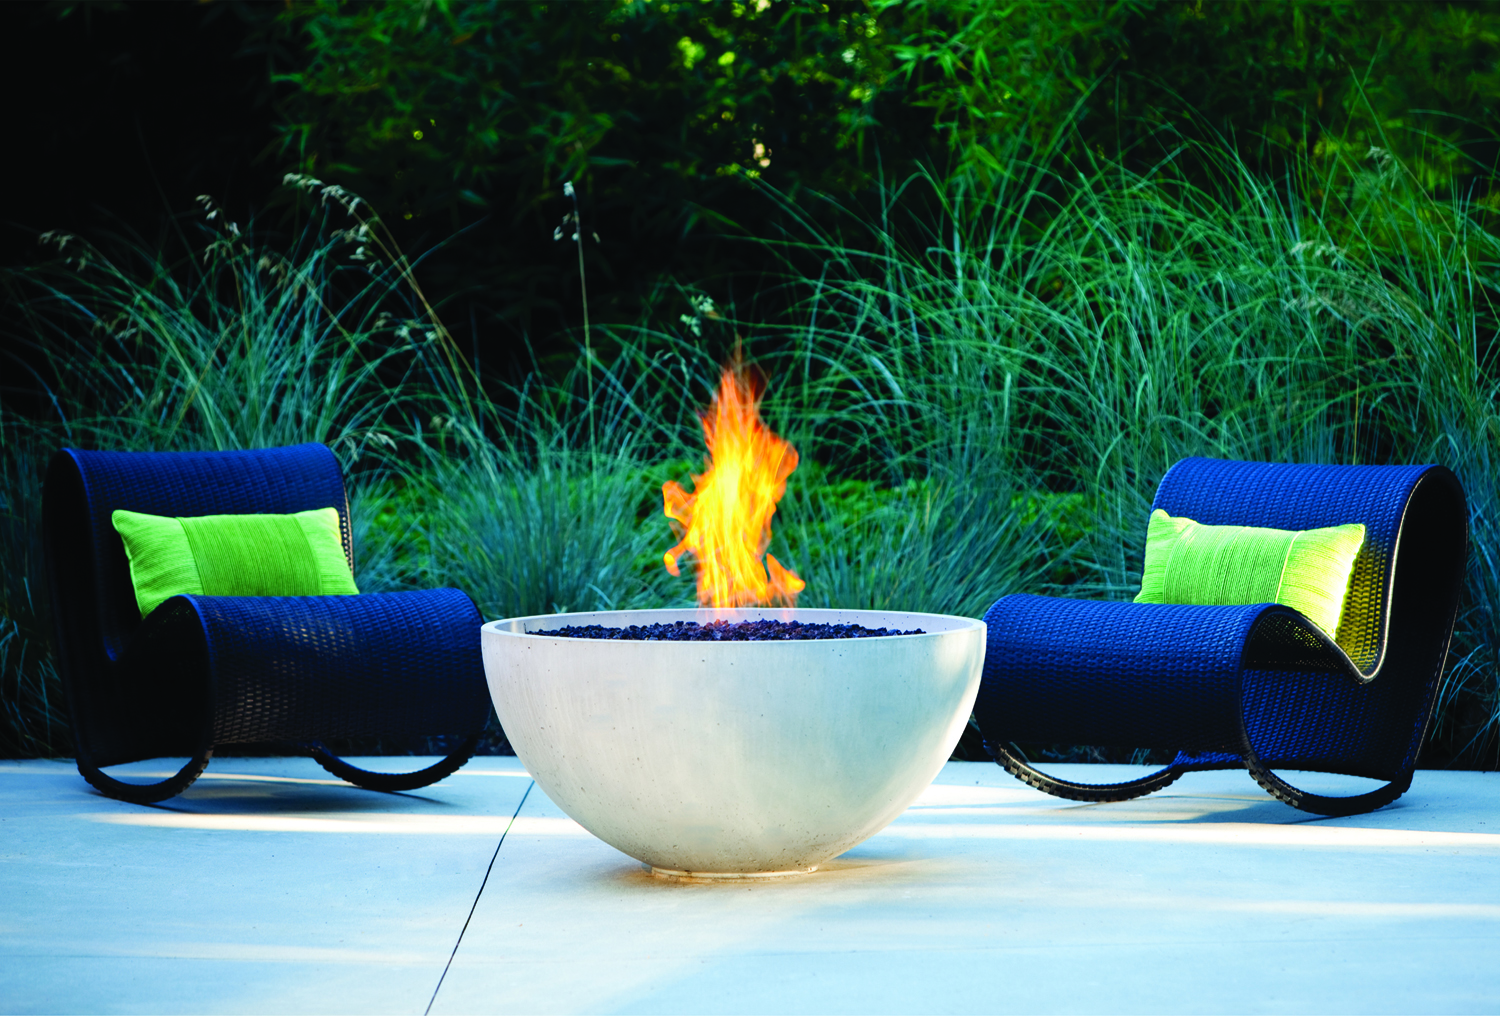 Ab8 Round Outdoor Fireplace Burners Fireplace Kits